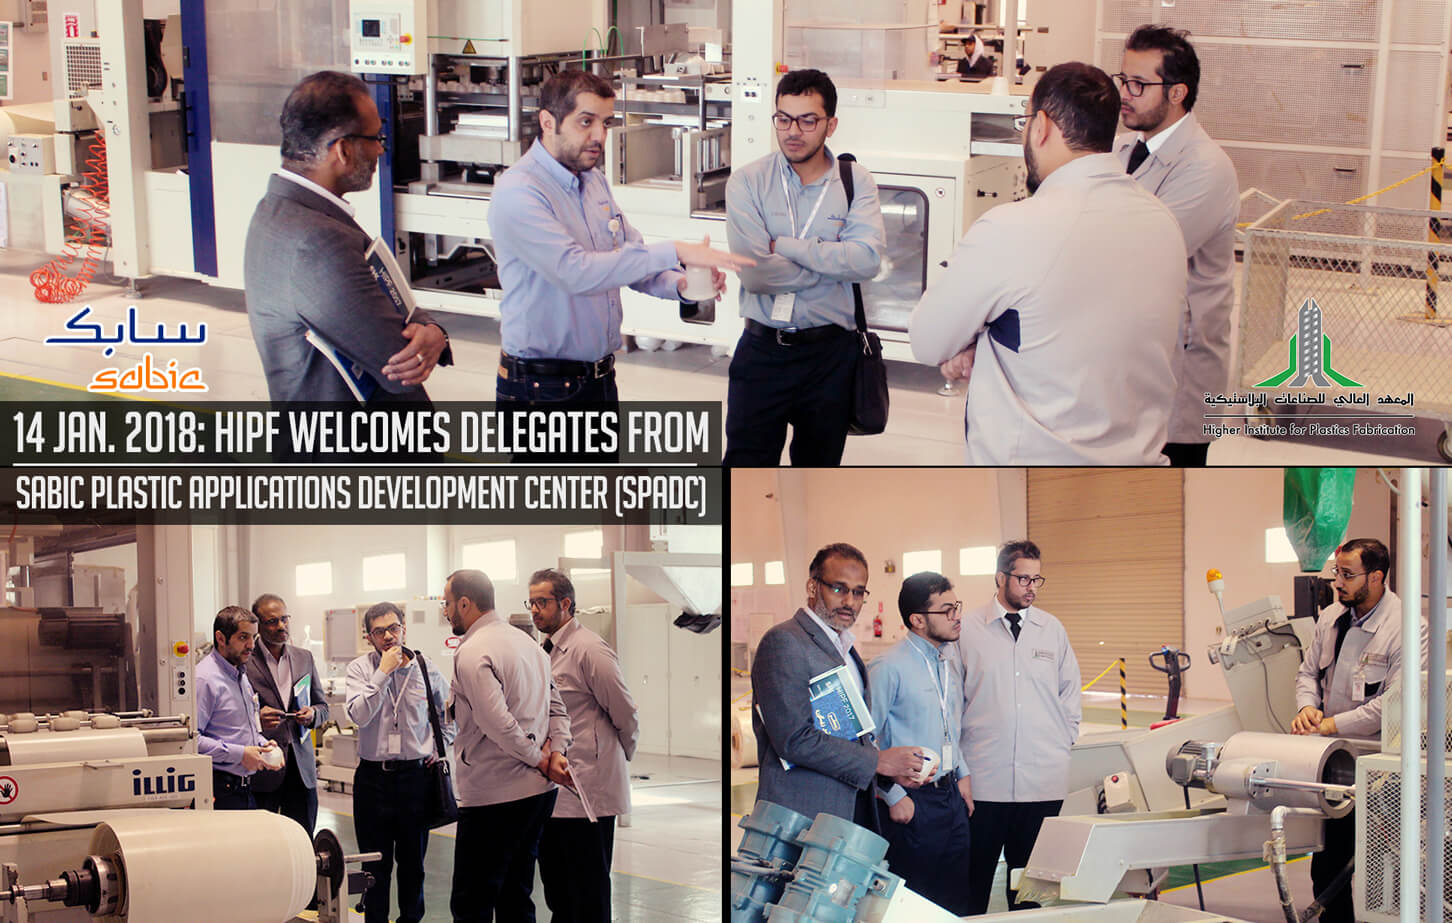 Visitors from SABIC Plastic Applications Development Center (SPADC)